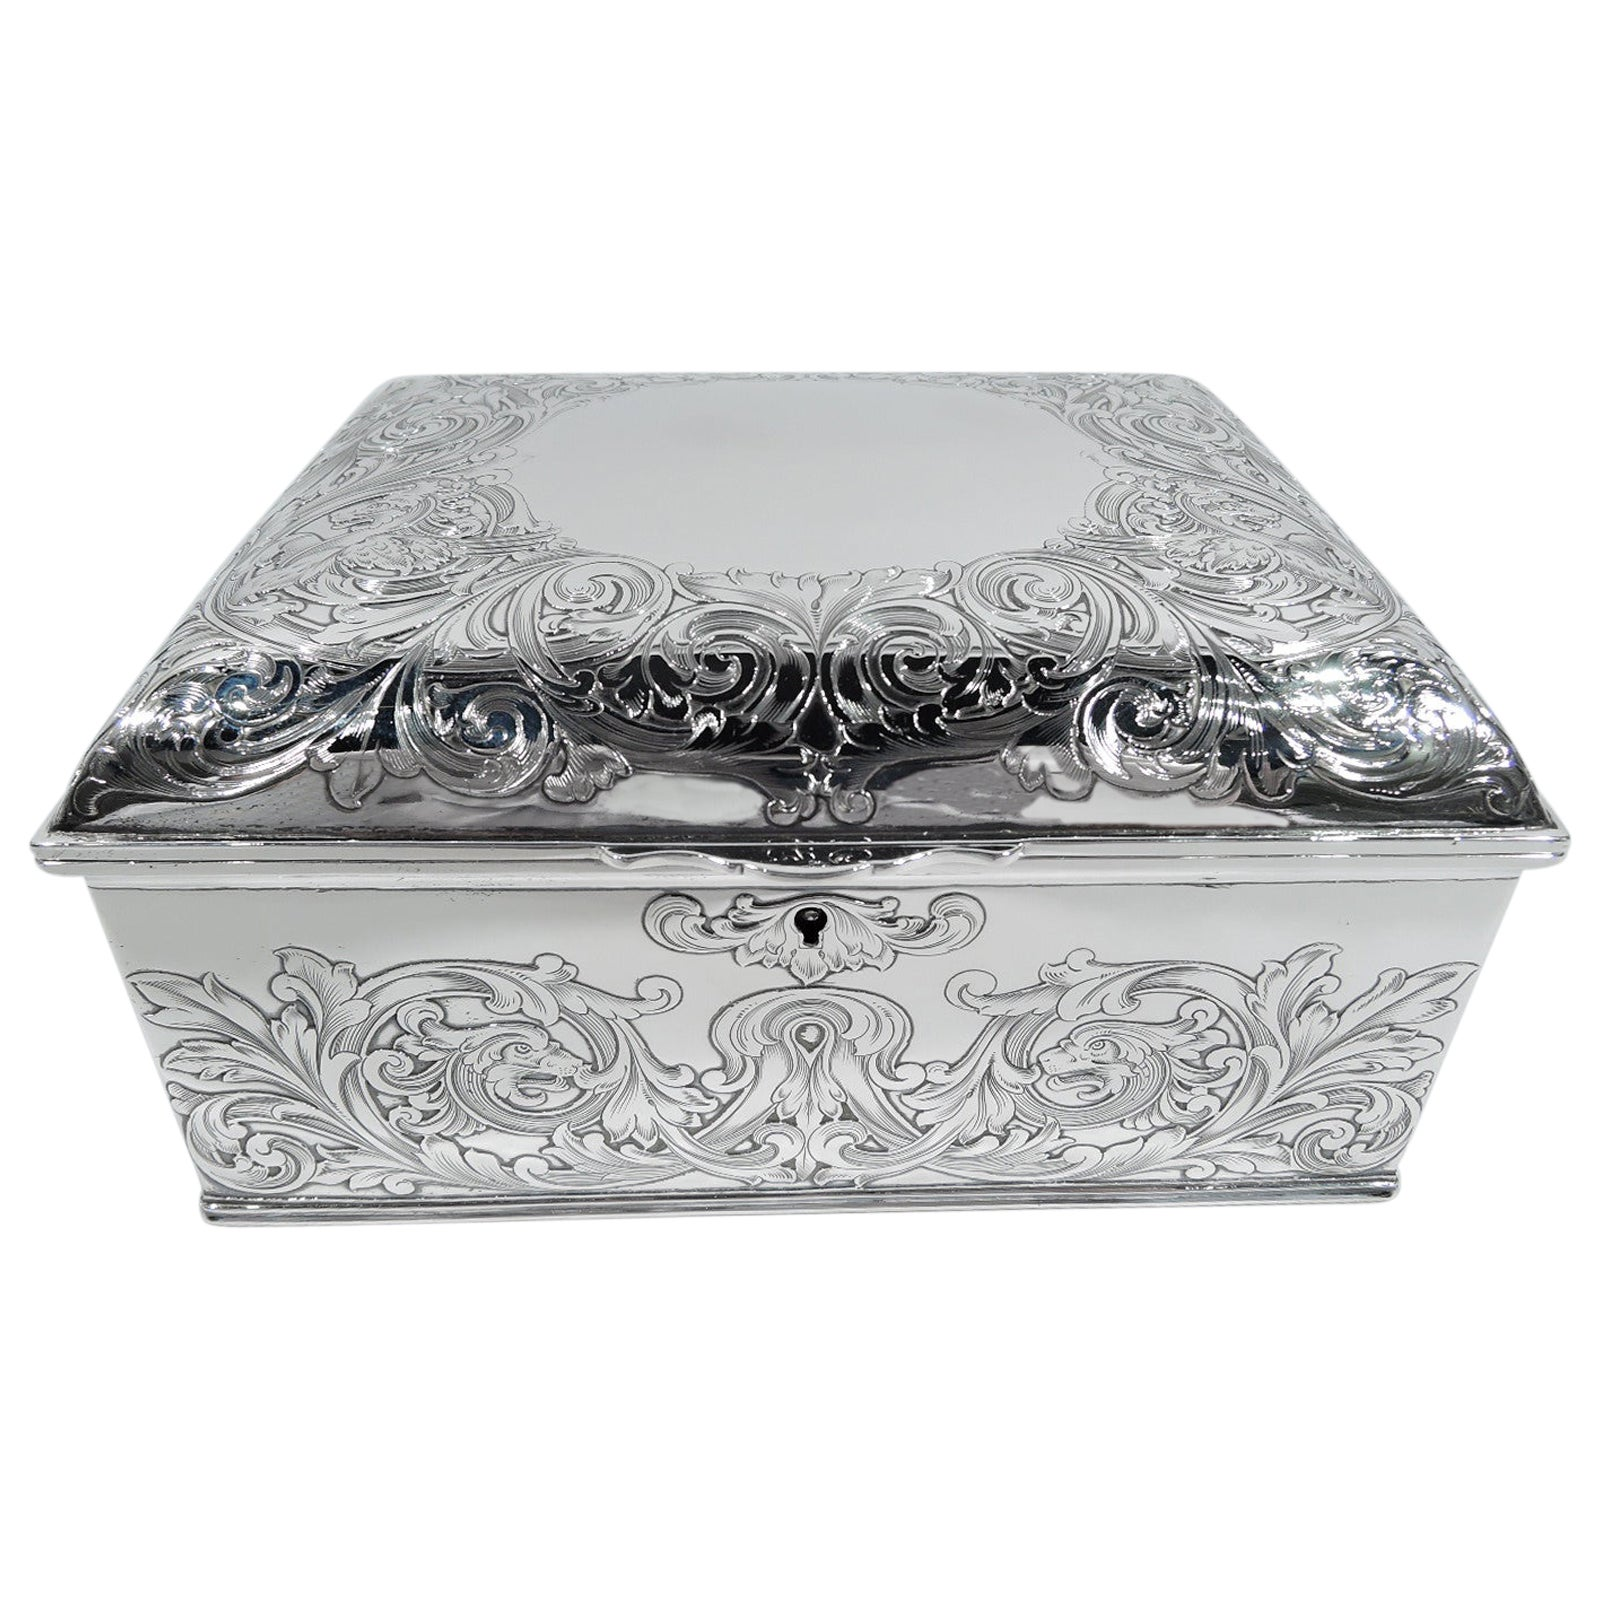 Antique Gorham Art Nouveau Sterling Silver Jewelry Box